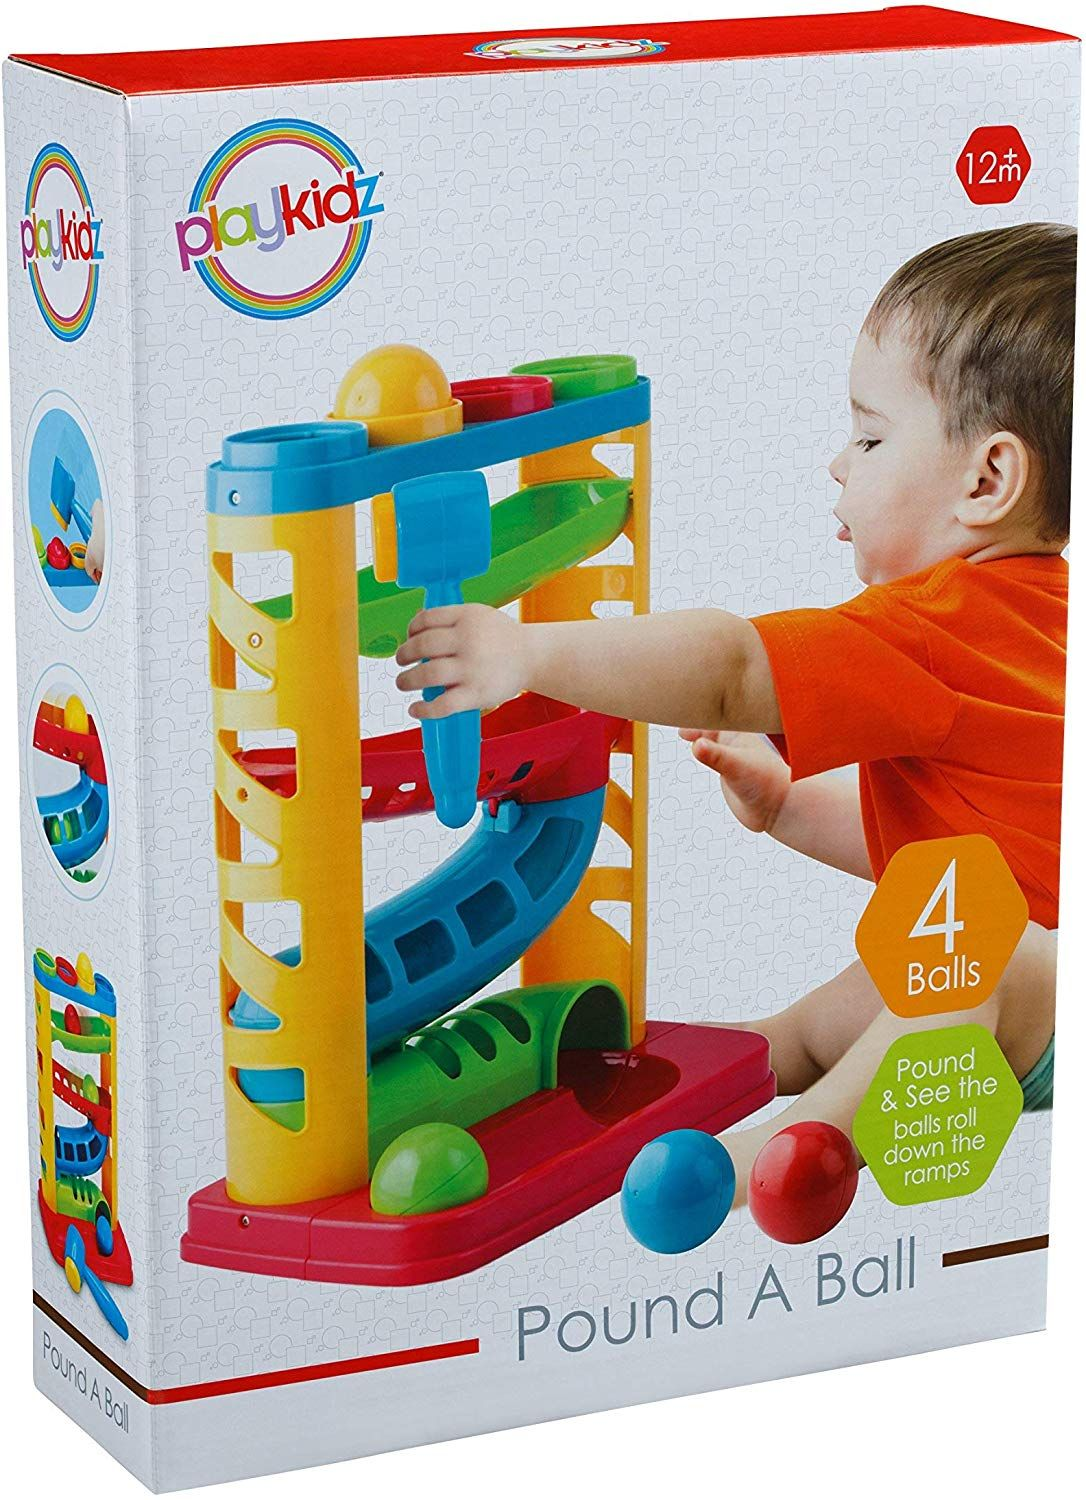 Product description Toys are vital tools that help foster ...